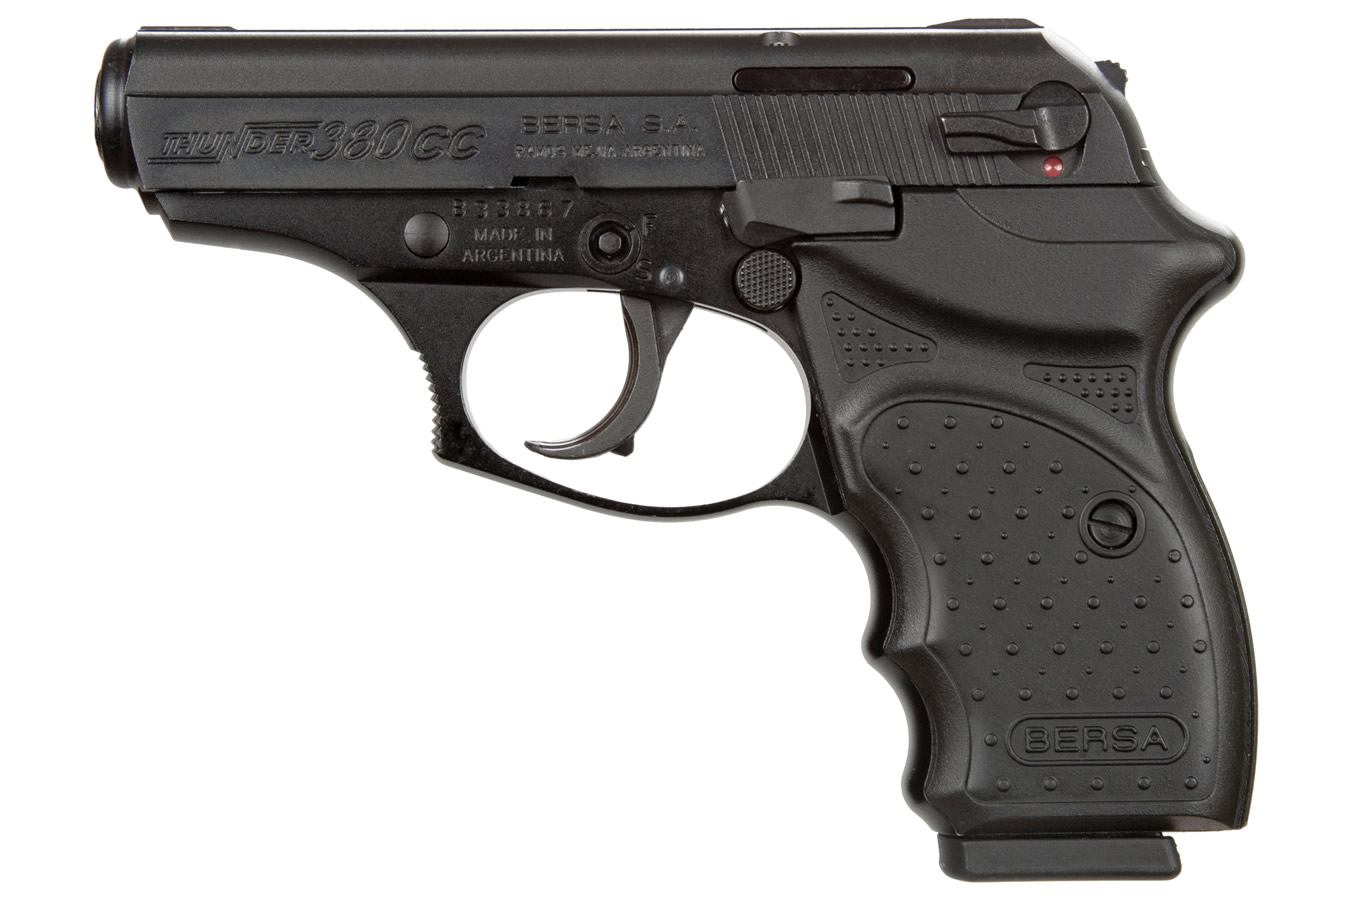 THUNDER 380 CC .380 ACP CONCEALED CARRY